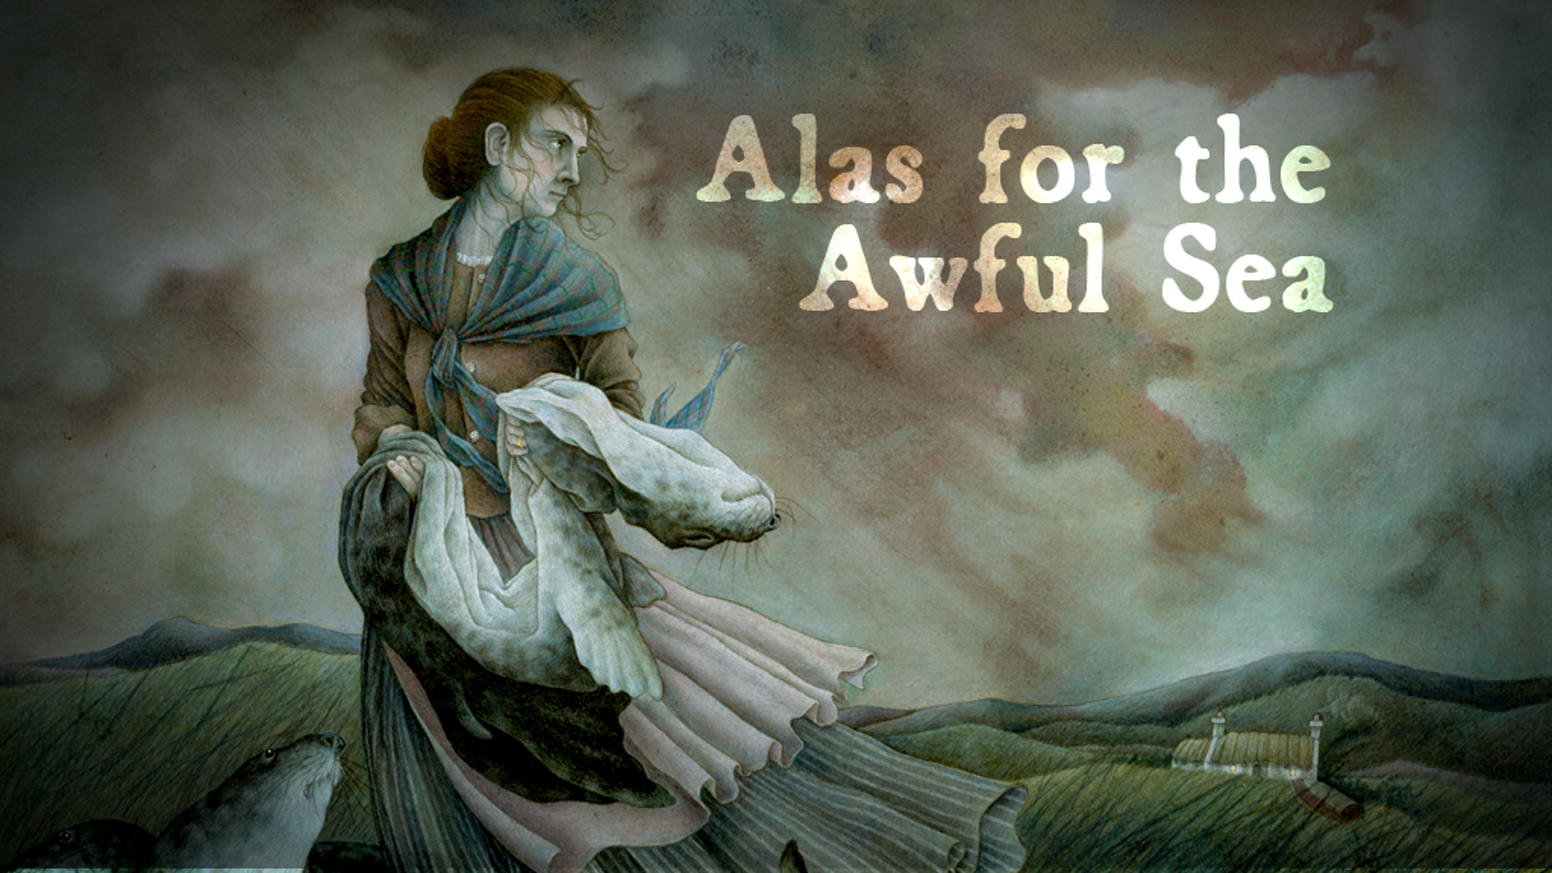 A tabletop roleplaying game about politics, folklore, and the human heart. Set in a rural 19th century town desperate to survive.